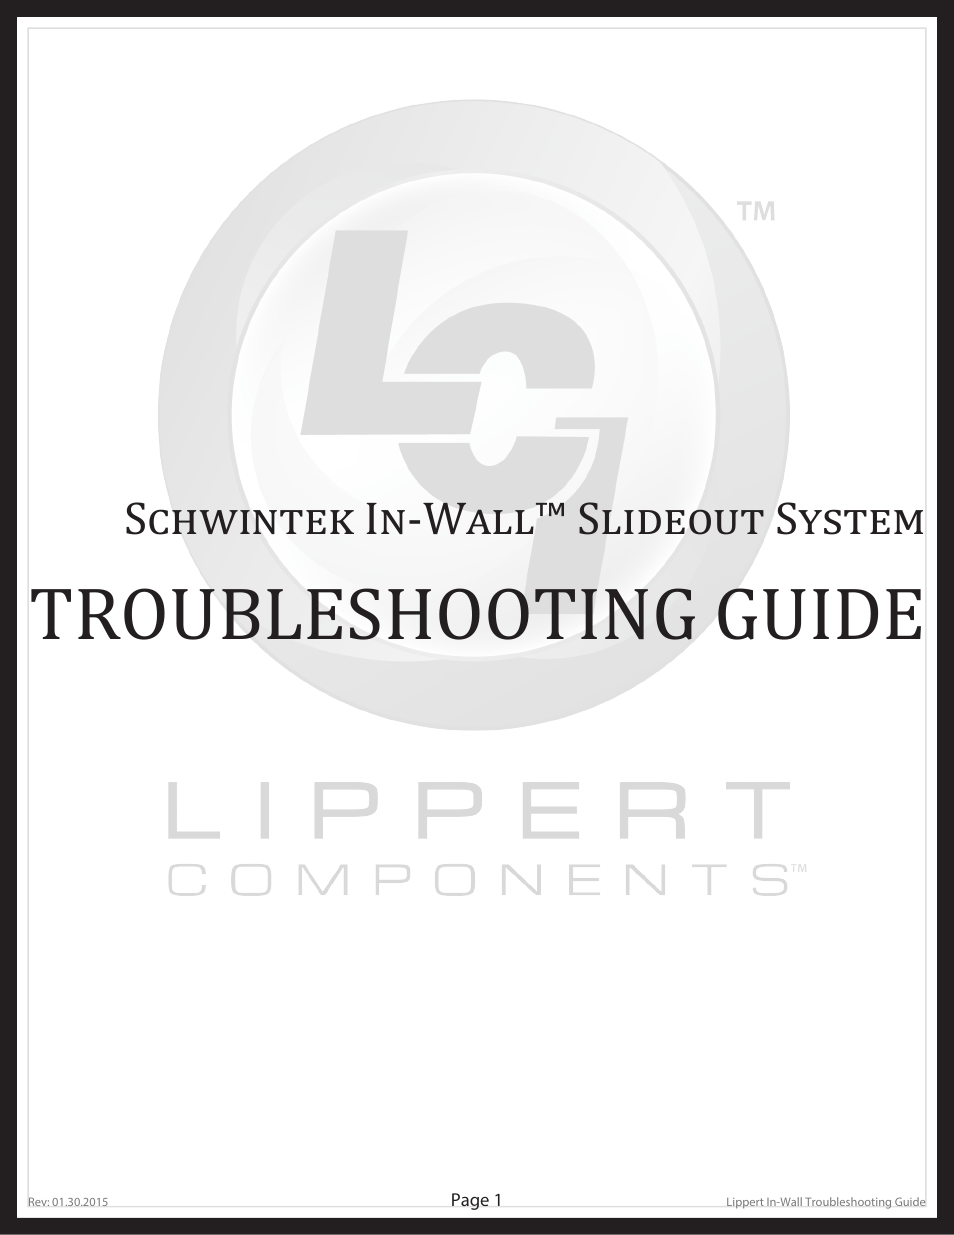 Lippert Components Schwintek In Wall Slide-Out System User